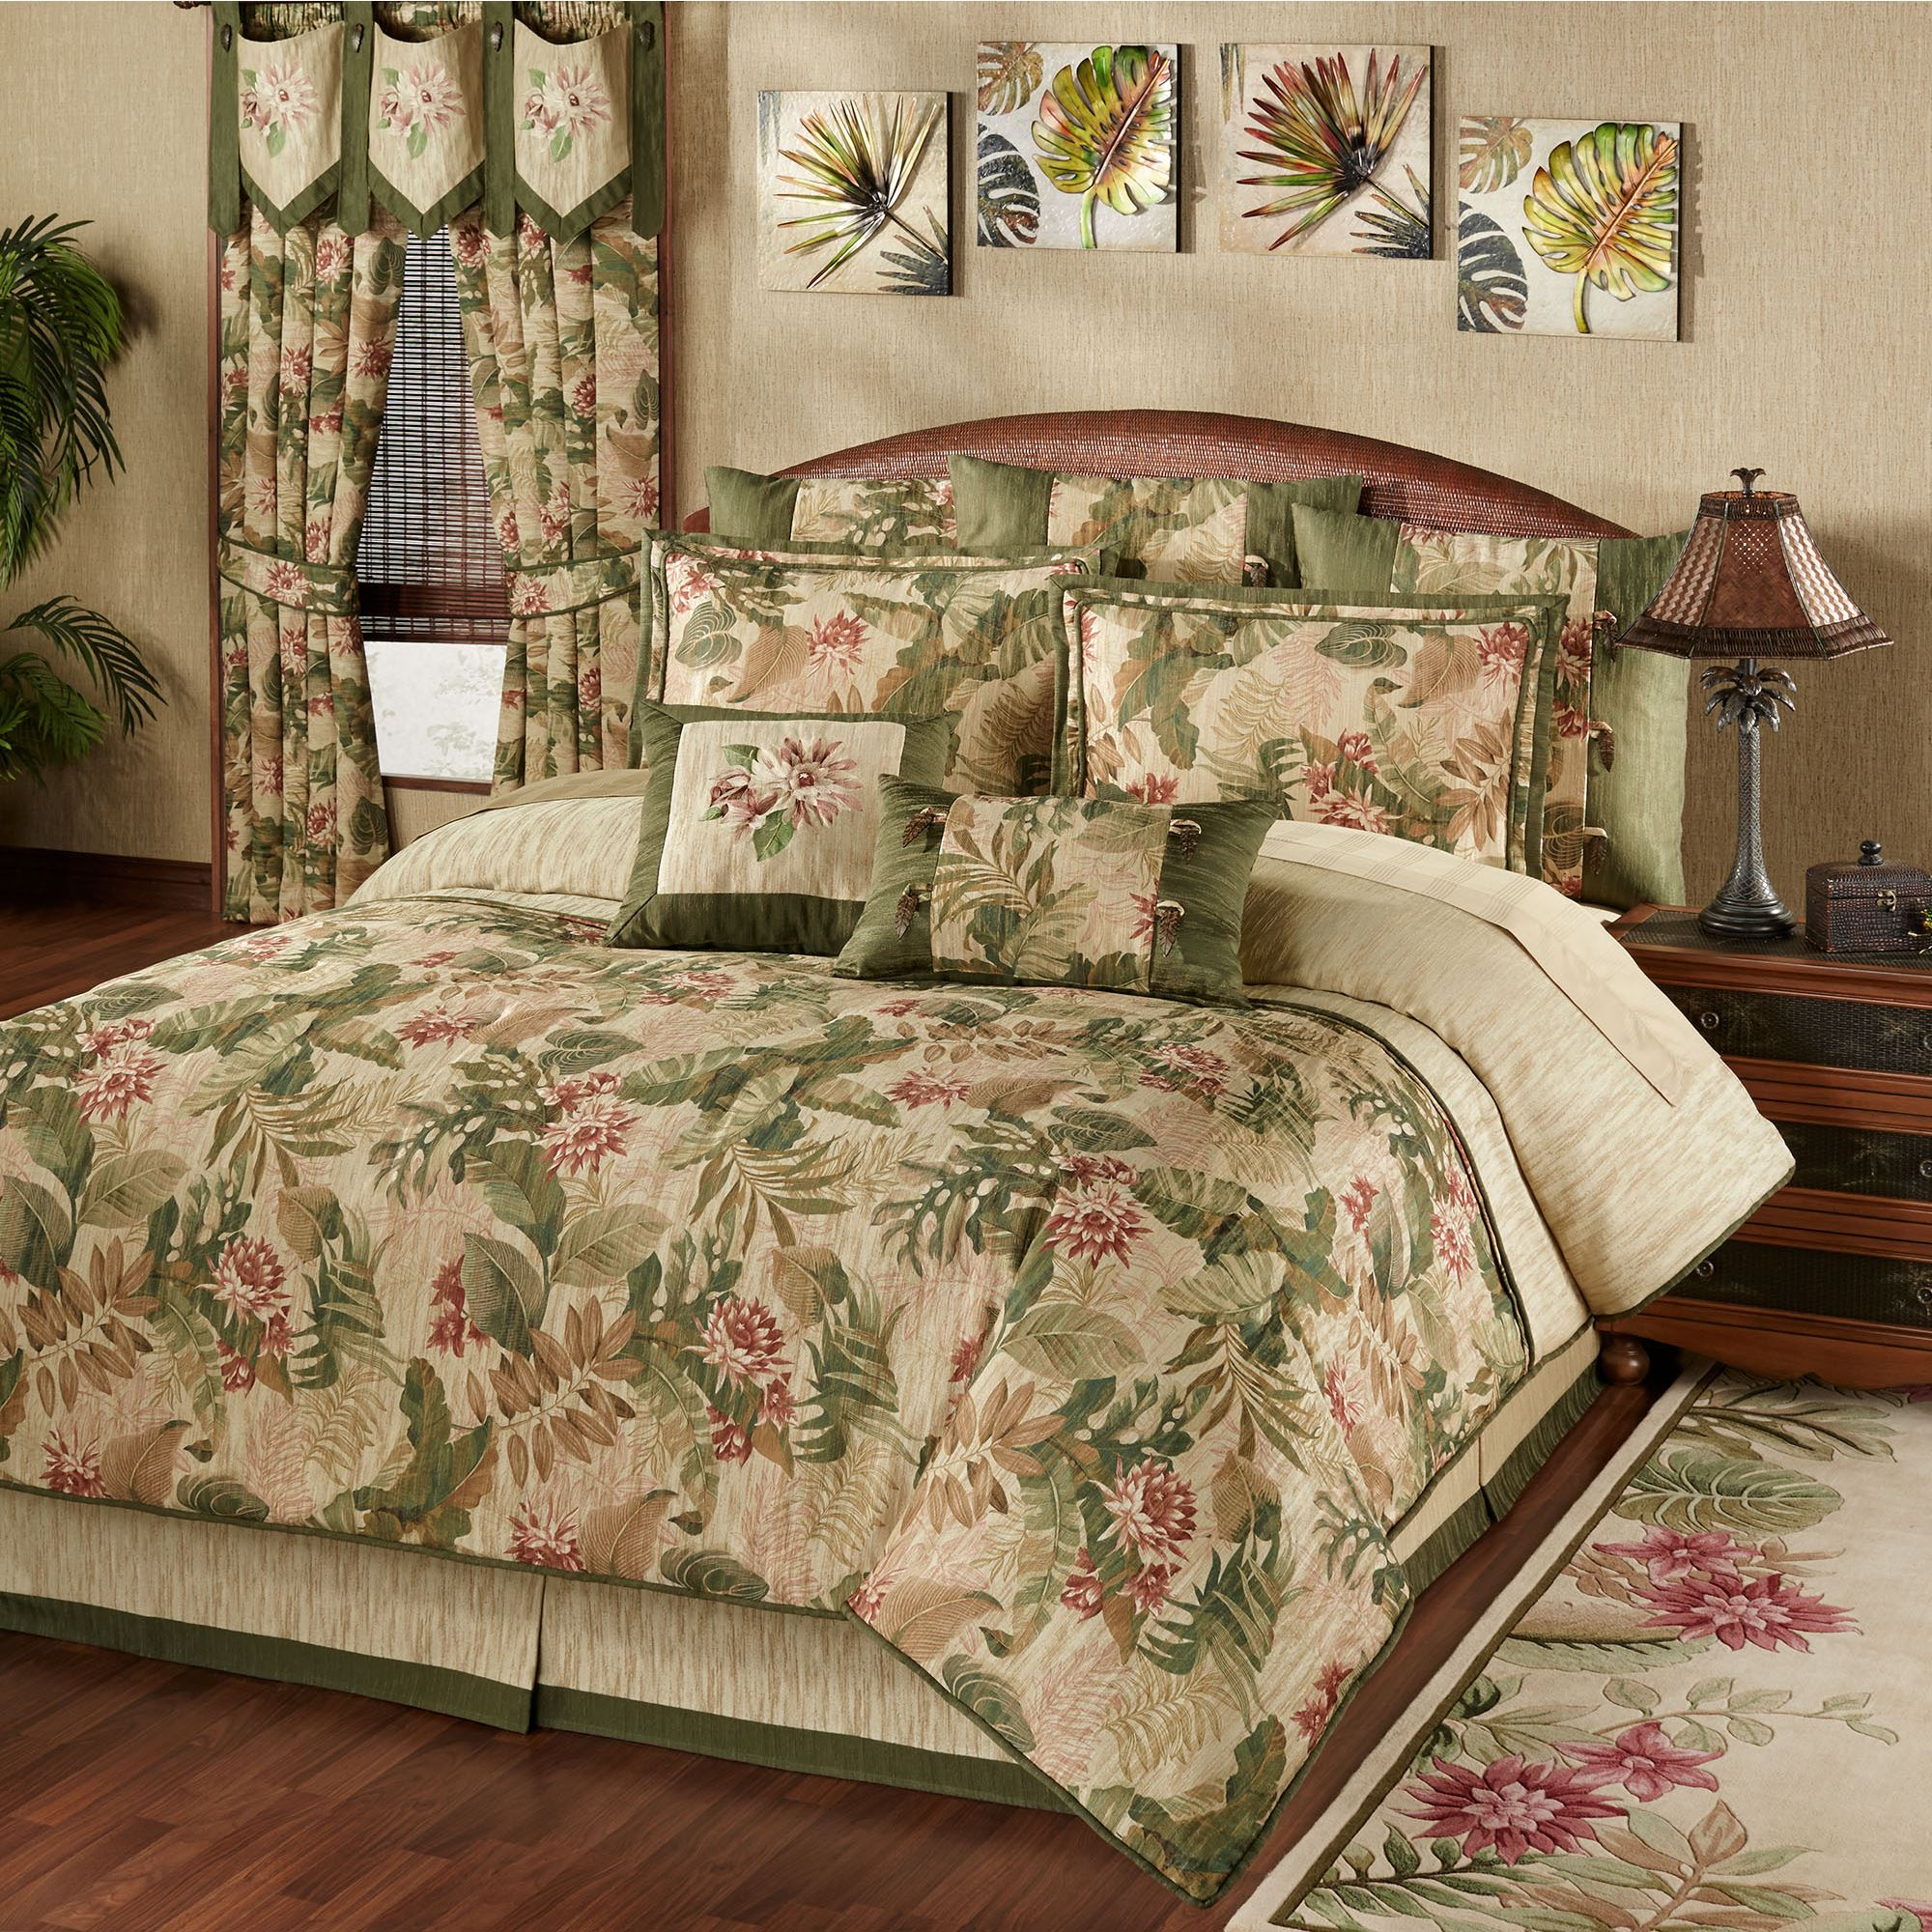 com sleep ip mainstays number flannel walmart comforter